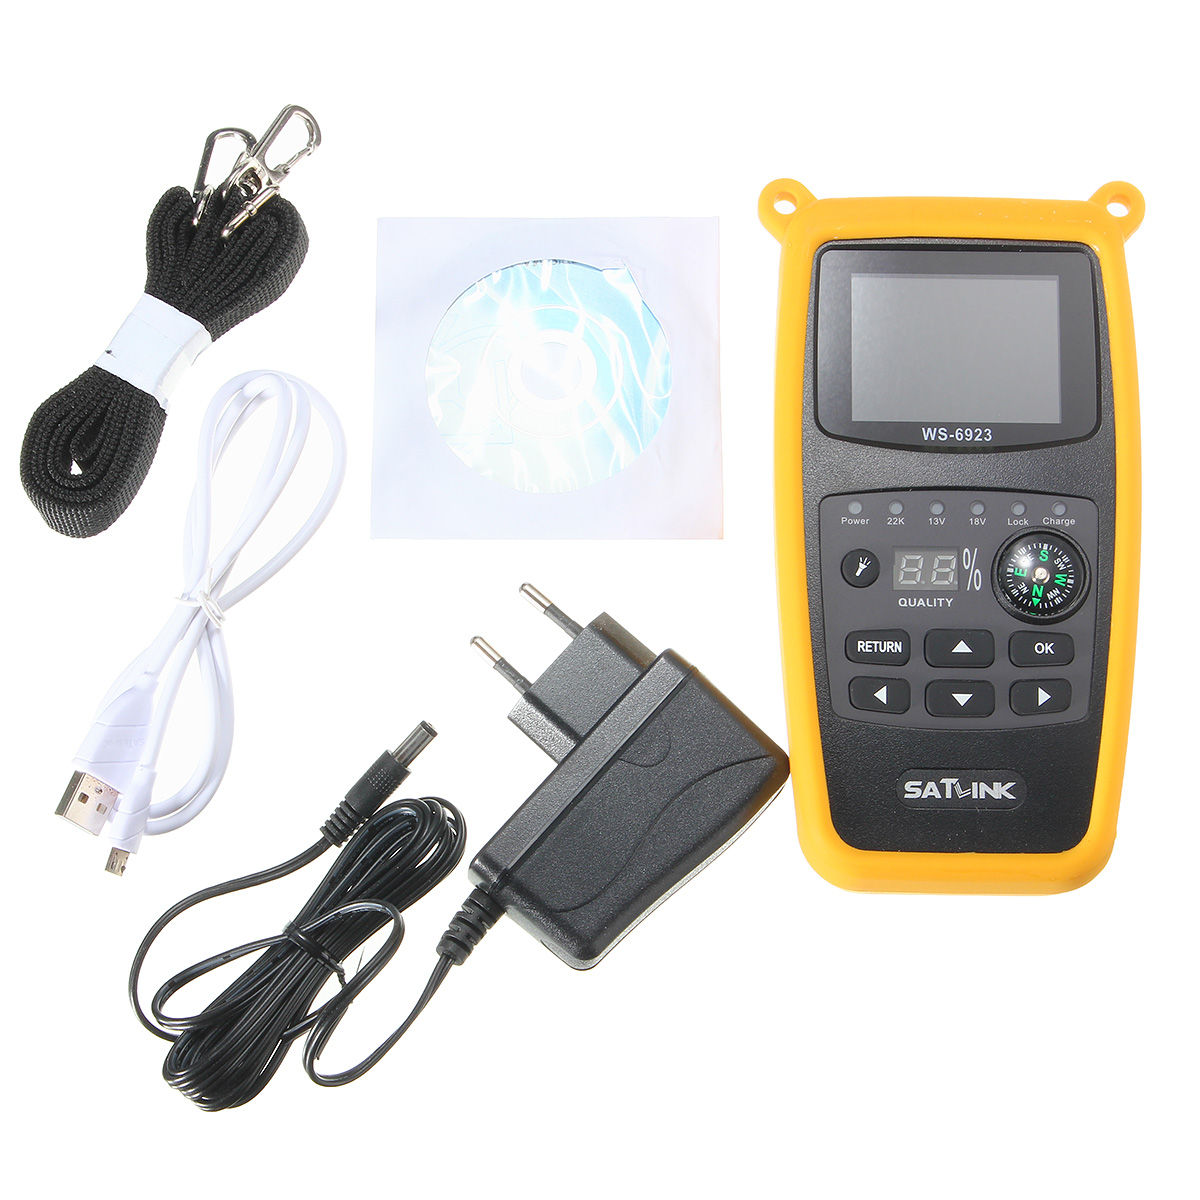 Satlink Ws 6923 Dvb S Fta Cku Band Digital Satellite Finder Meter Electric Scooter Razor Wiring Diagram 12v Receiver